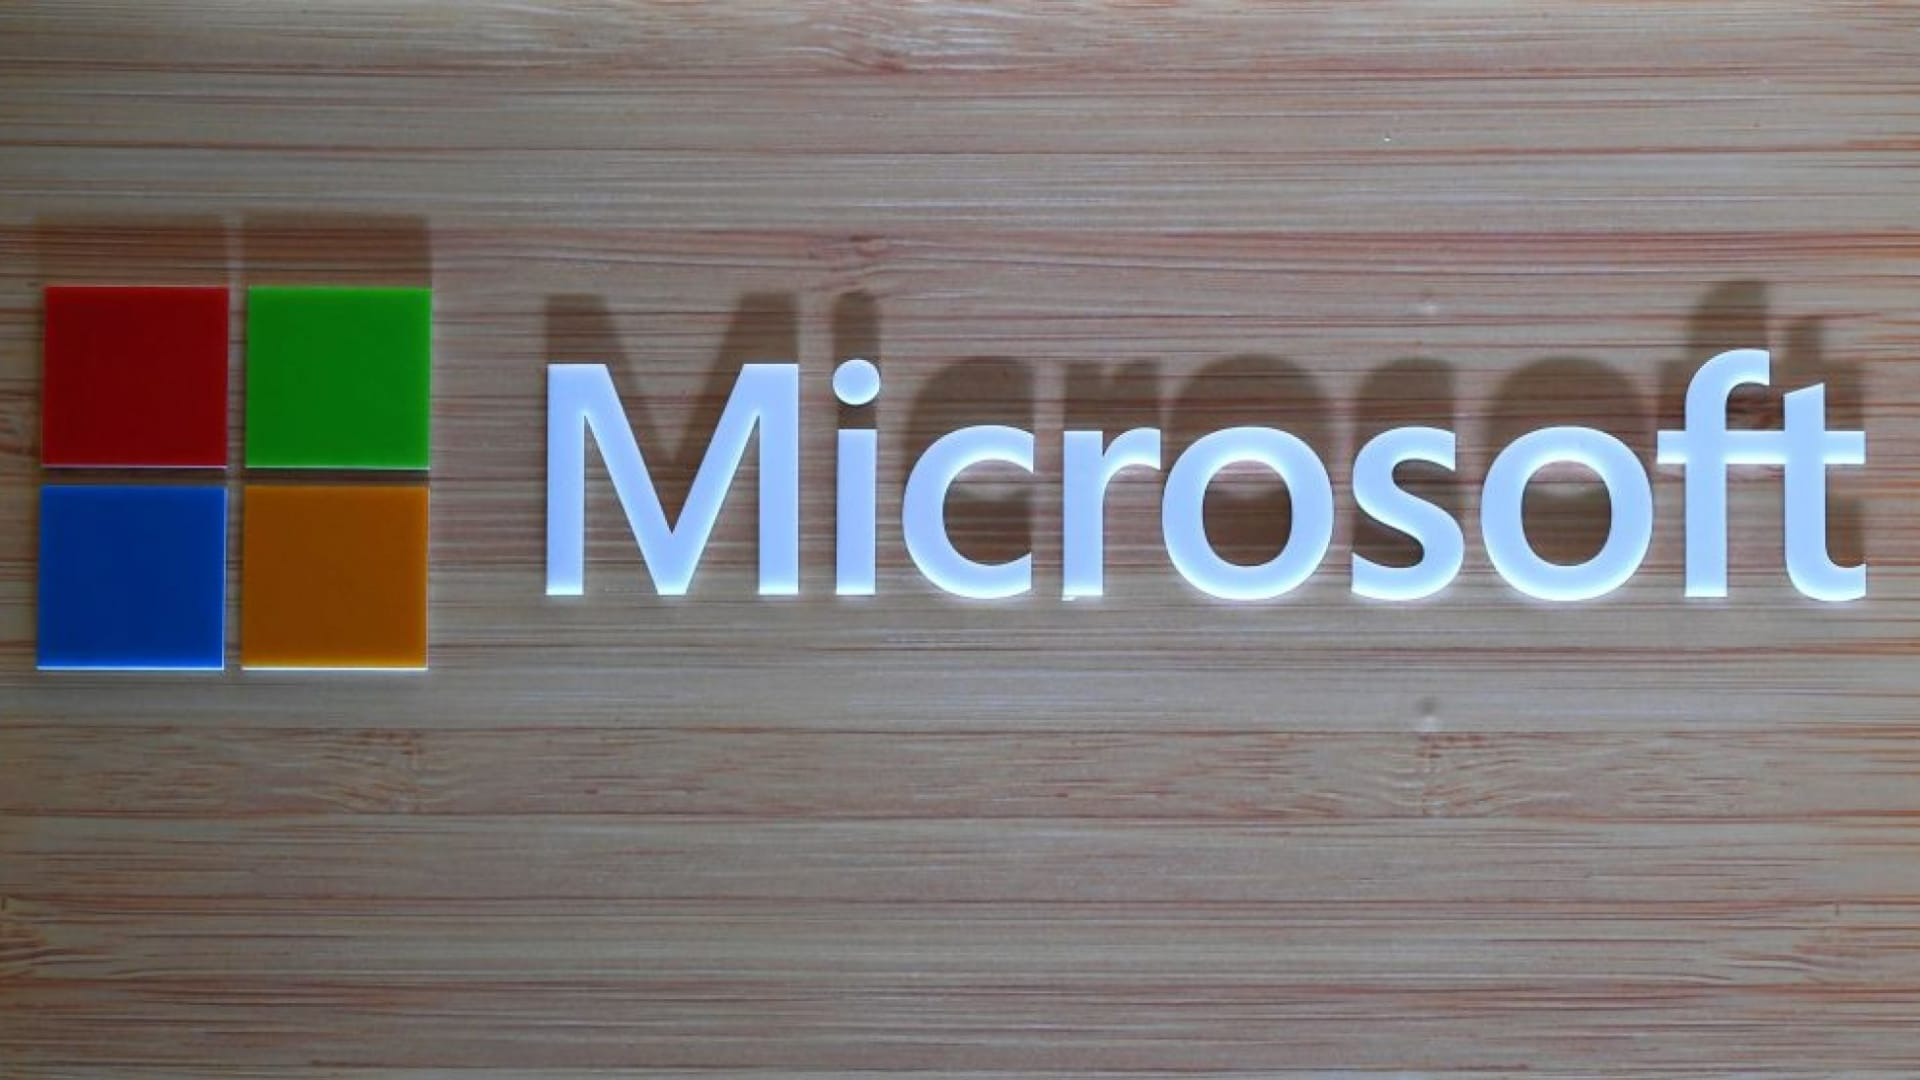 Microsoft Just Issued an Emergency Windows Fix. Why You Should Update Your PC Immediately